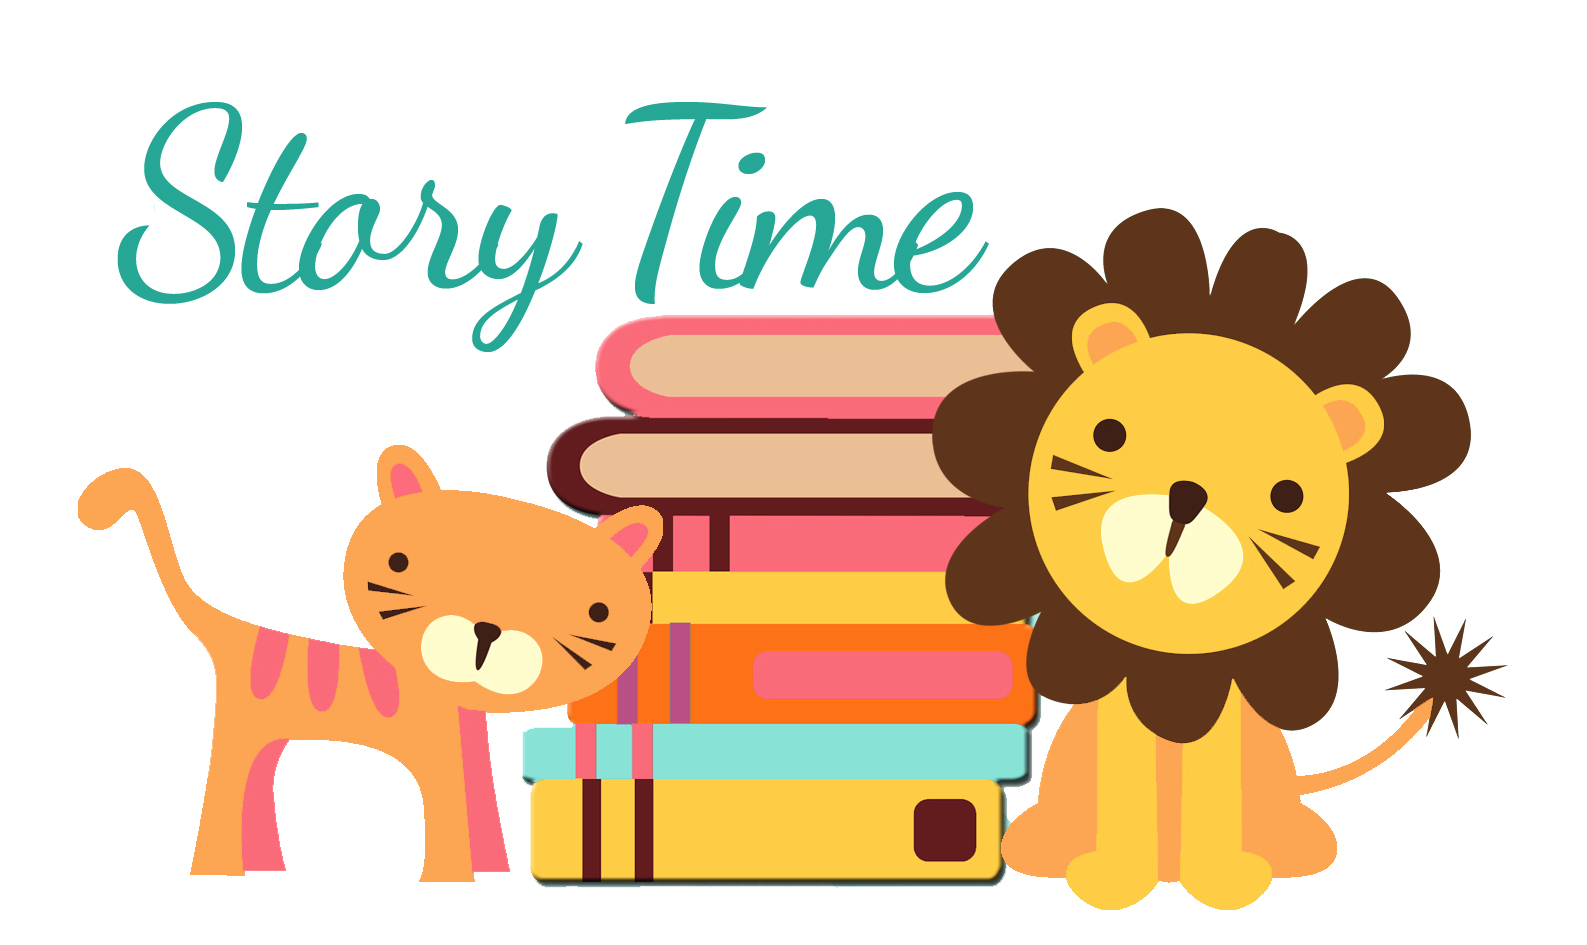 Storytime Time Lion Cat